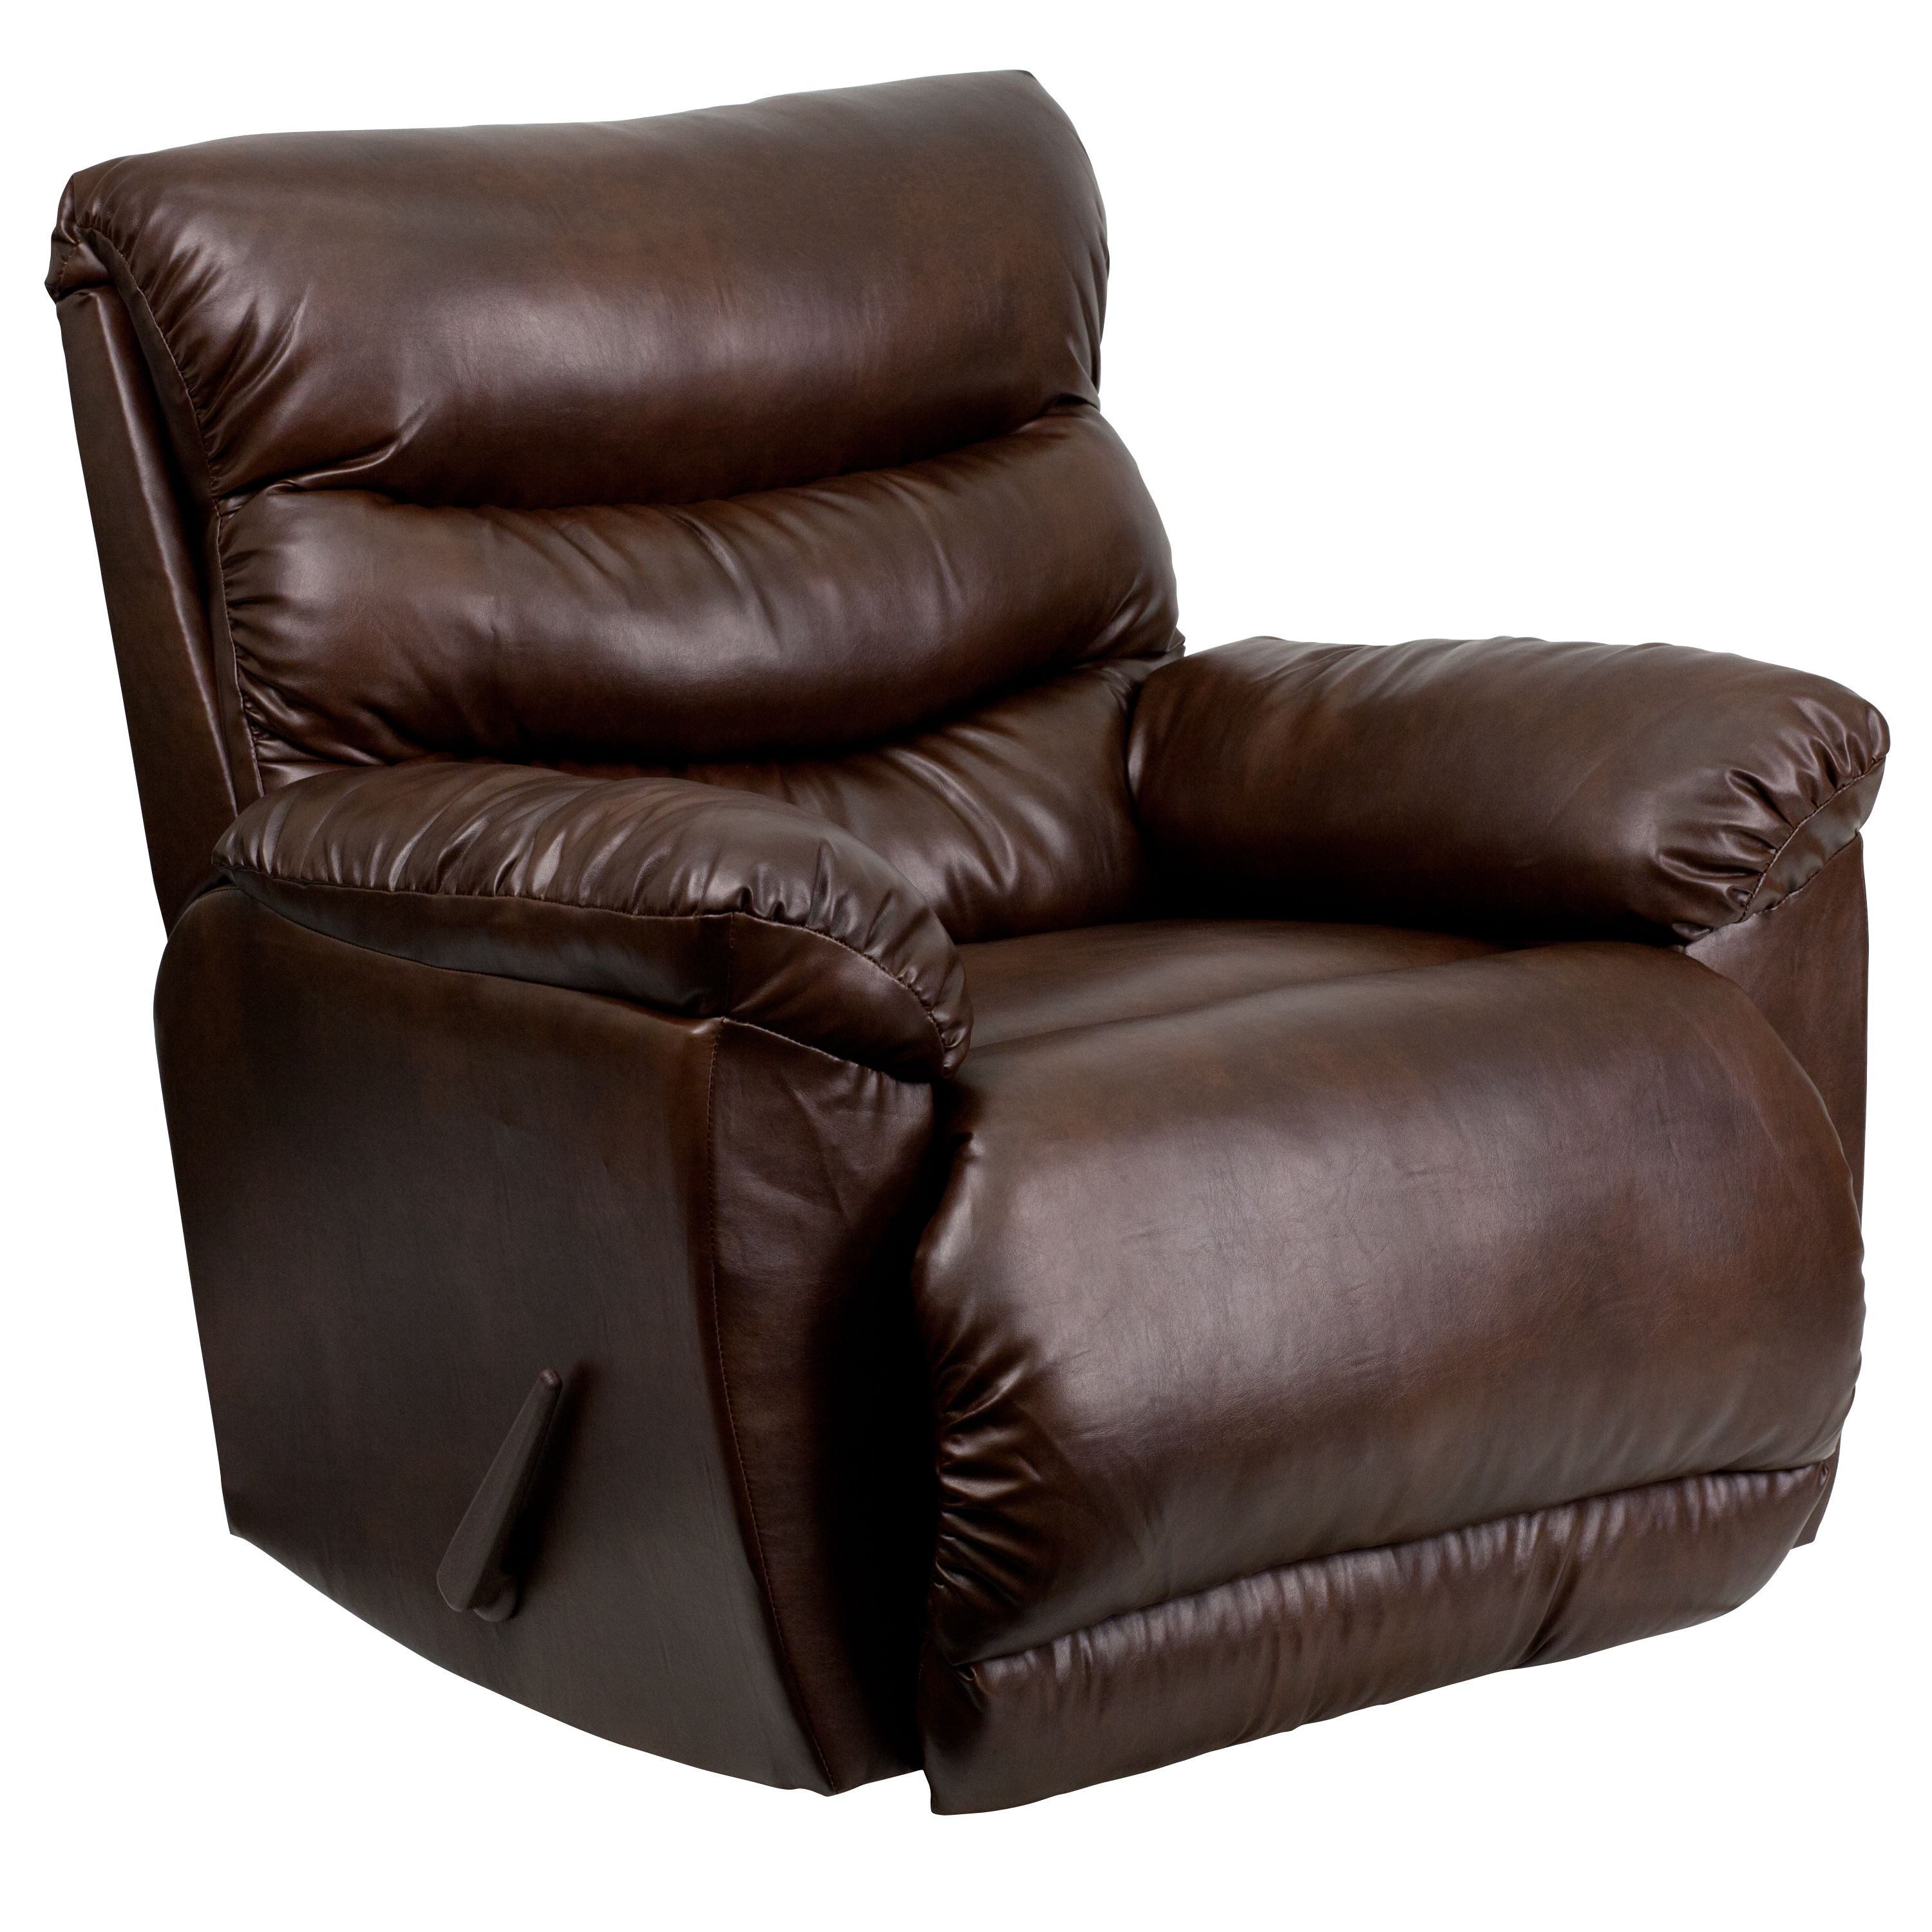 Pin On Recliner Collection By Urbane Interior Designs